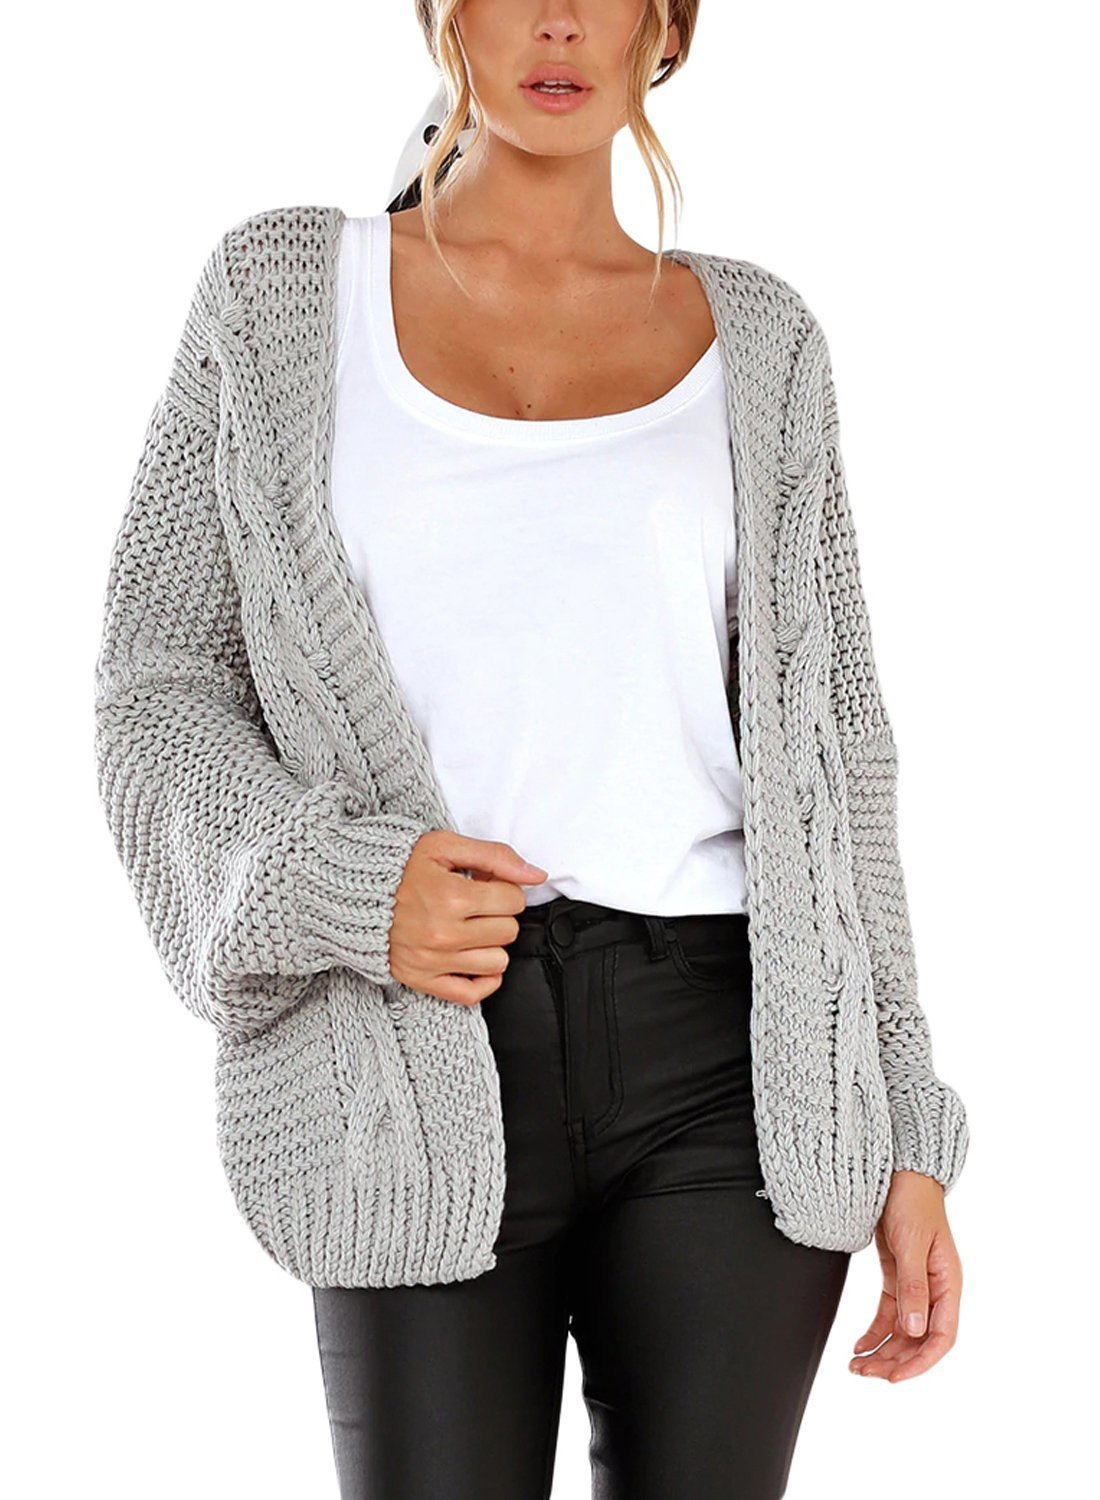 Women's Casual Long Sleeve Open Front Chunky Cable Knit Cardigan Sweaters Loose Oversized Outwear Coat Jacket Grey XL 16 18